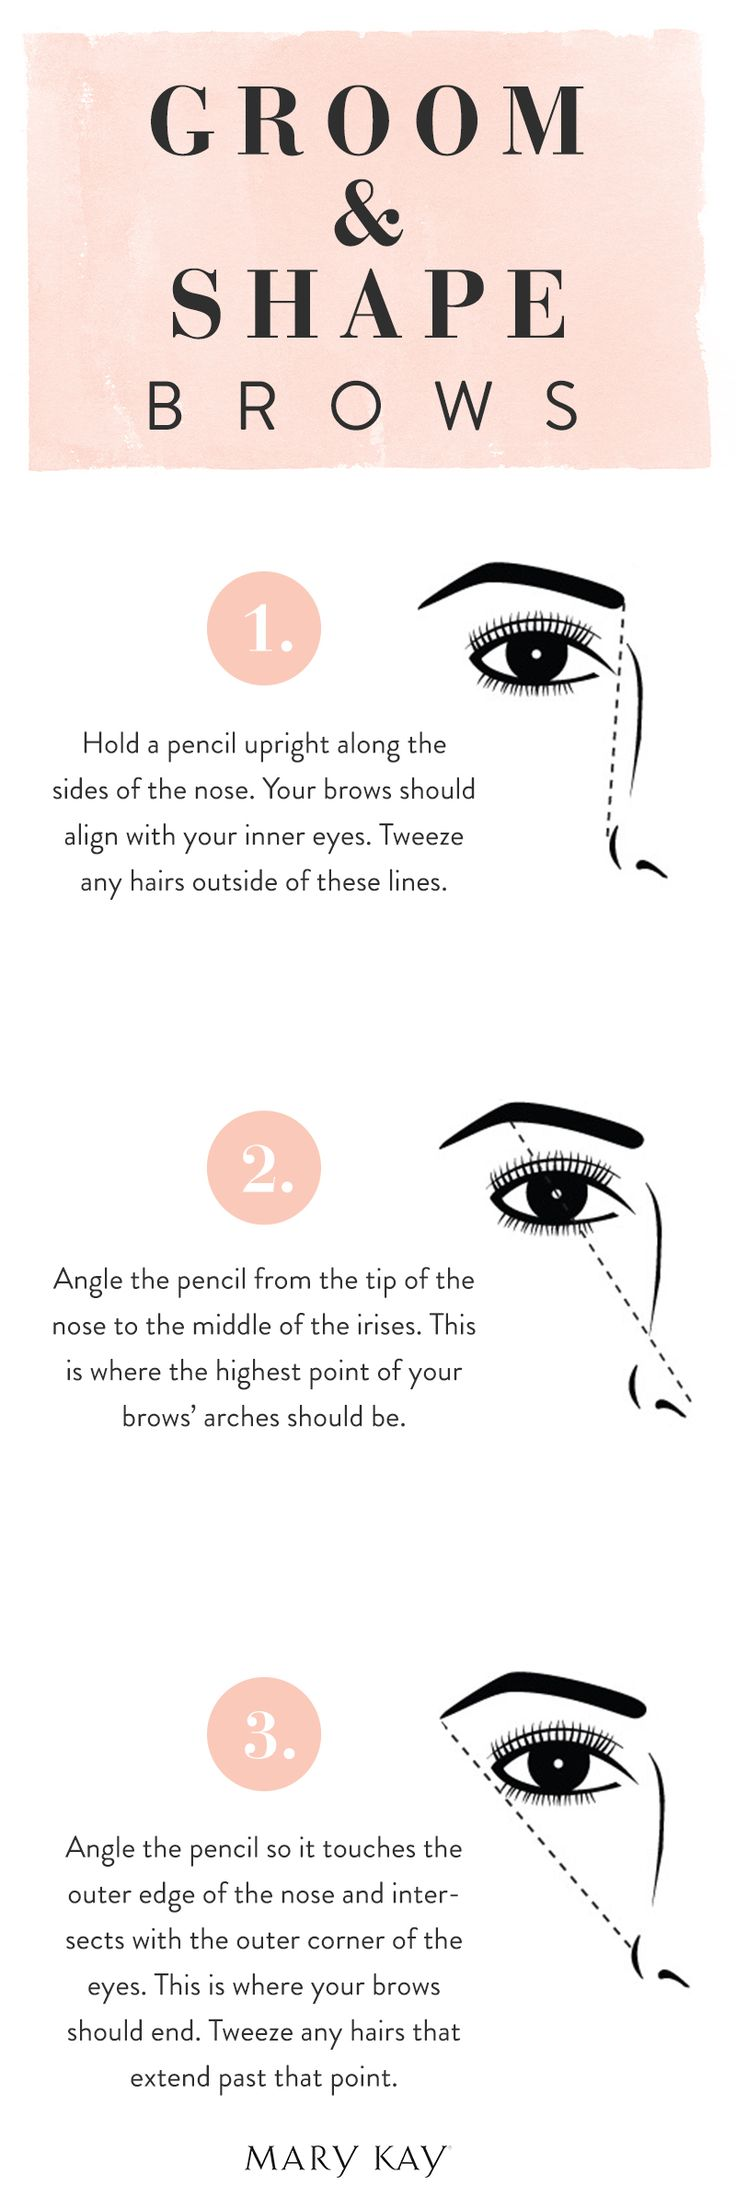 Well-groomed, defined eyebrows can make your face look years younger. Brush brows gently and tweeze along the natural brow lines. Here is how to use a pencil as a guide to create flattering arches. Cl